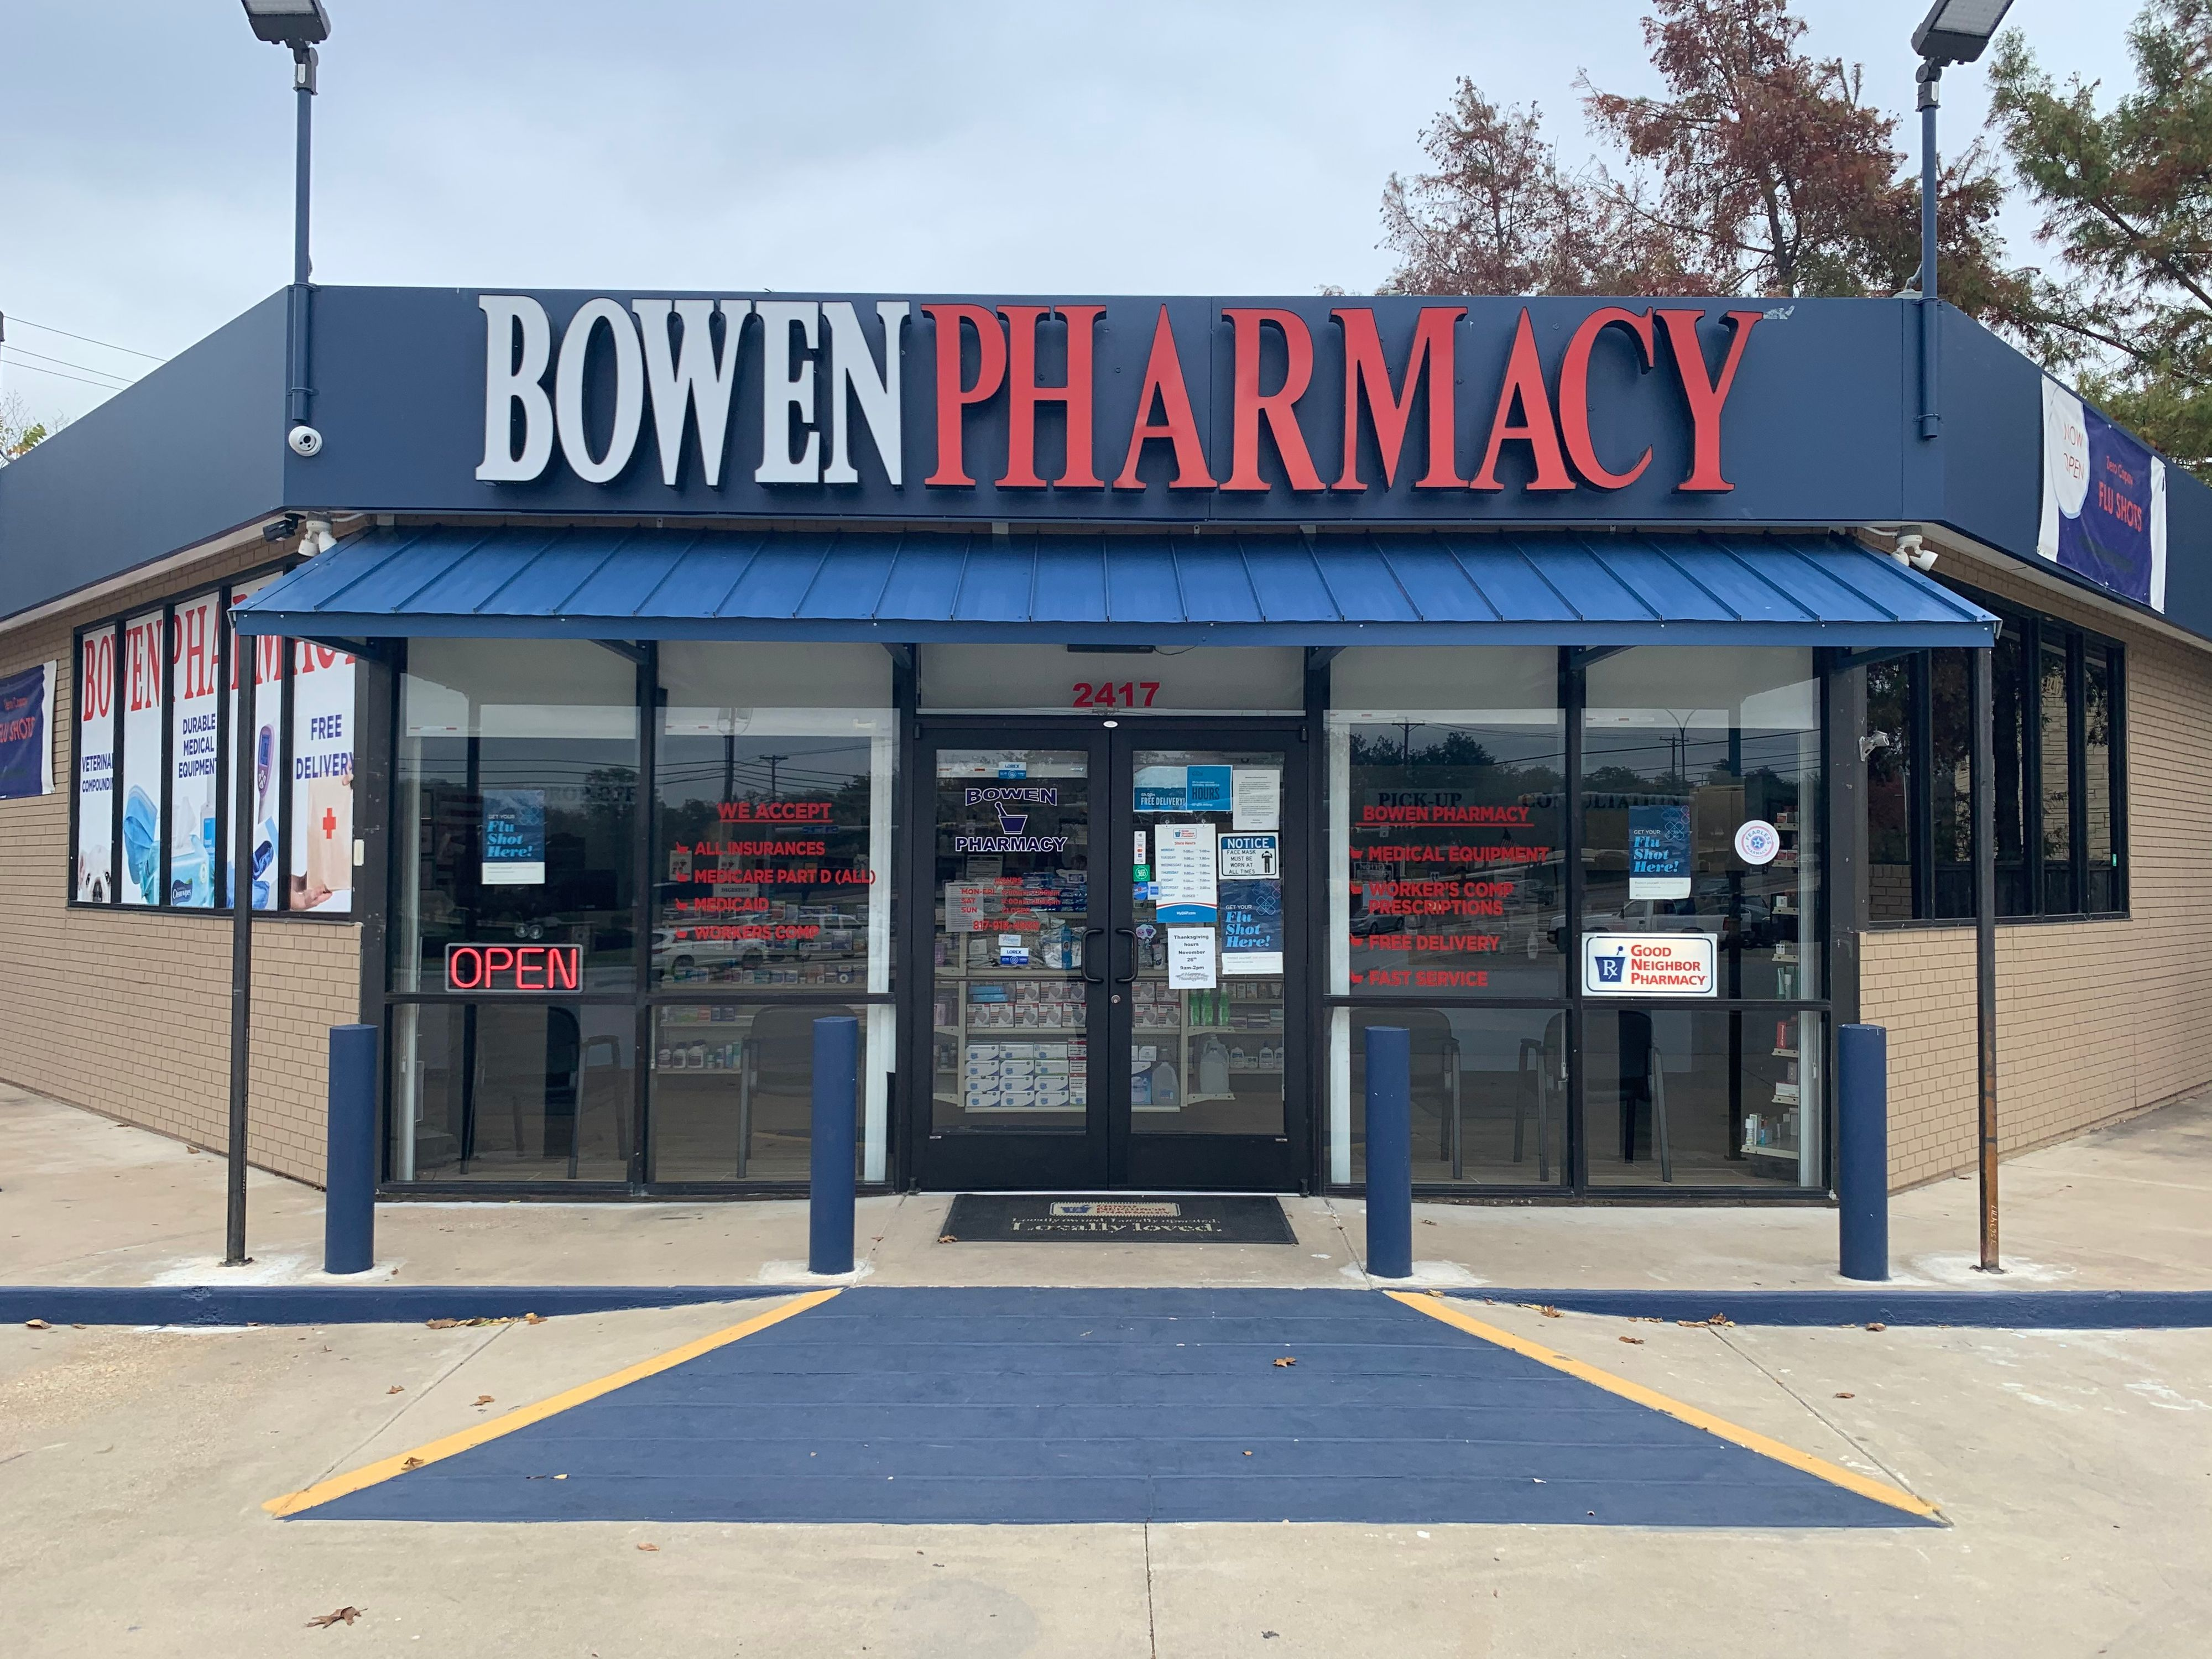 Welcome to Bowen Pharmacy